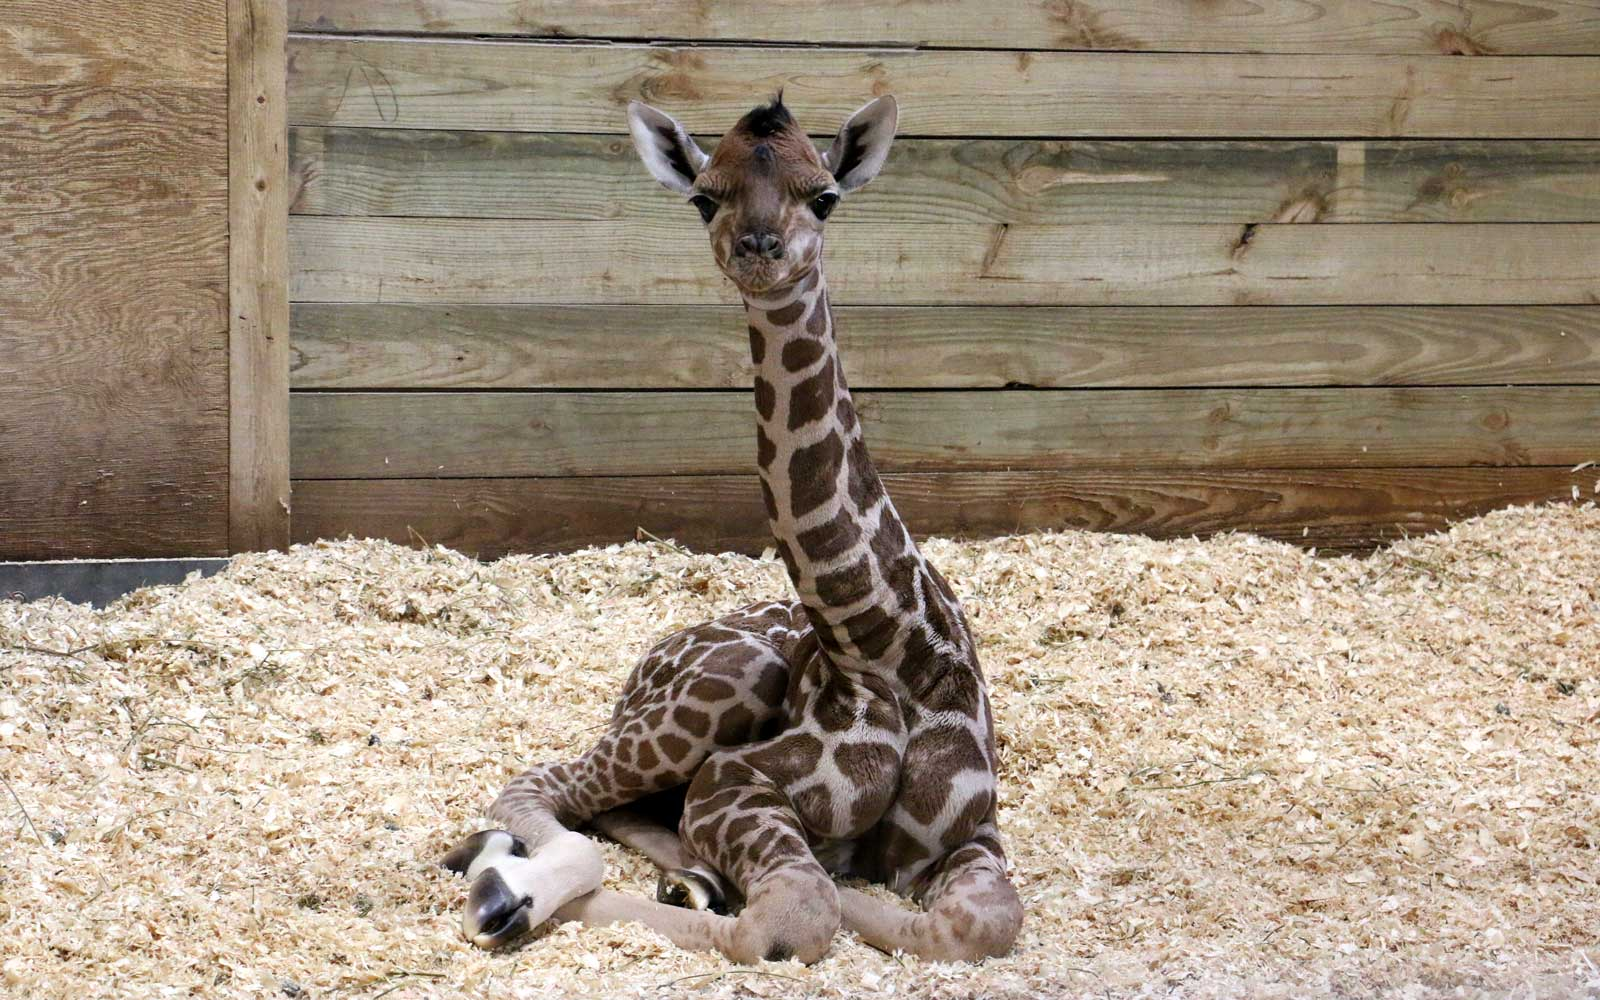 A Baby Giraffe Was Born at a Zoo in Des Moines